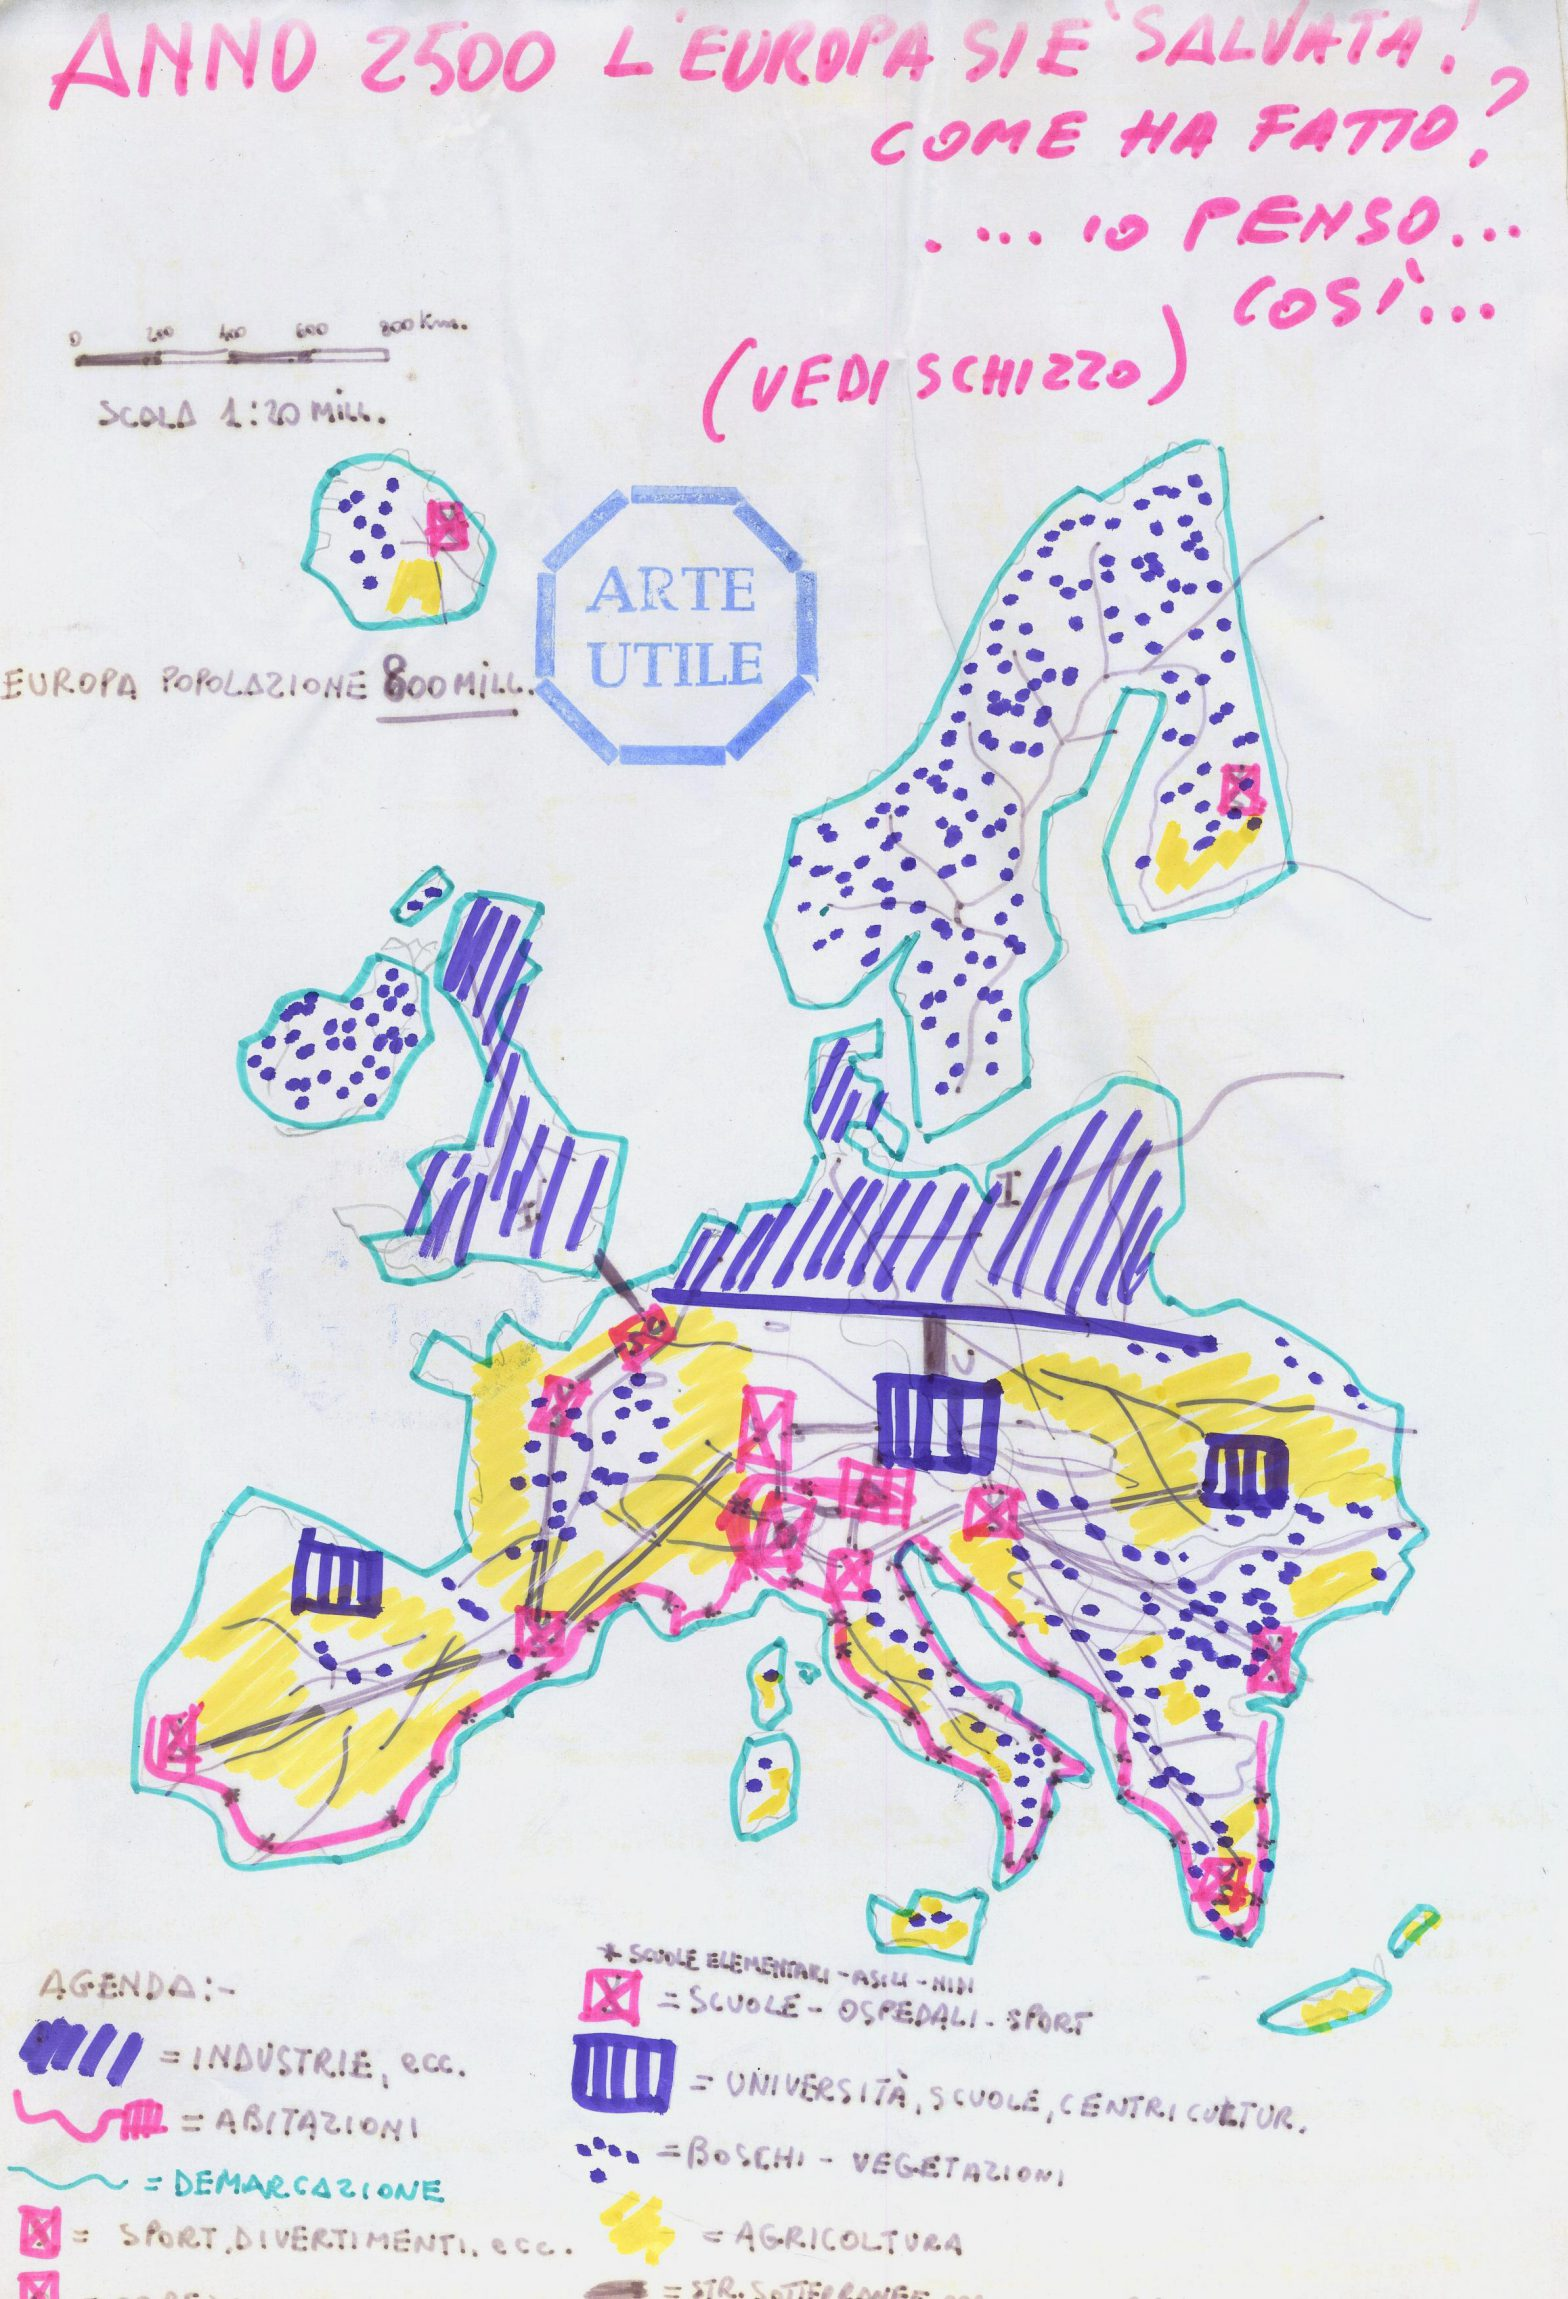 Schematic map of Europe with handwritten legend.